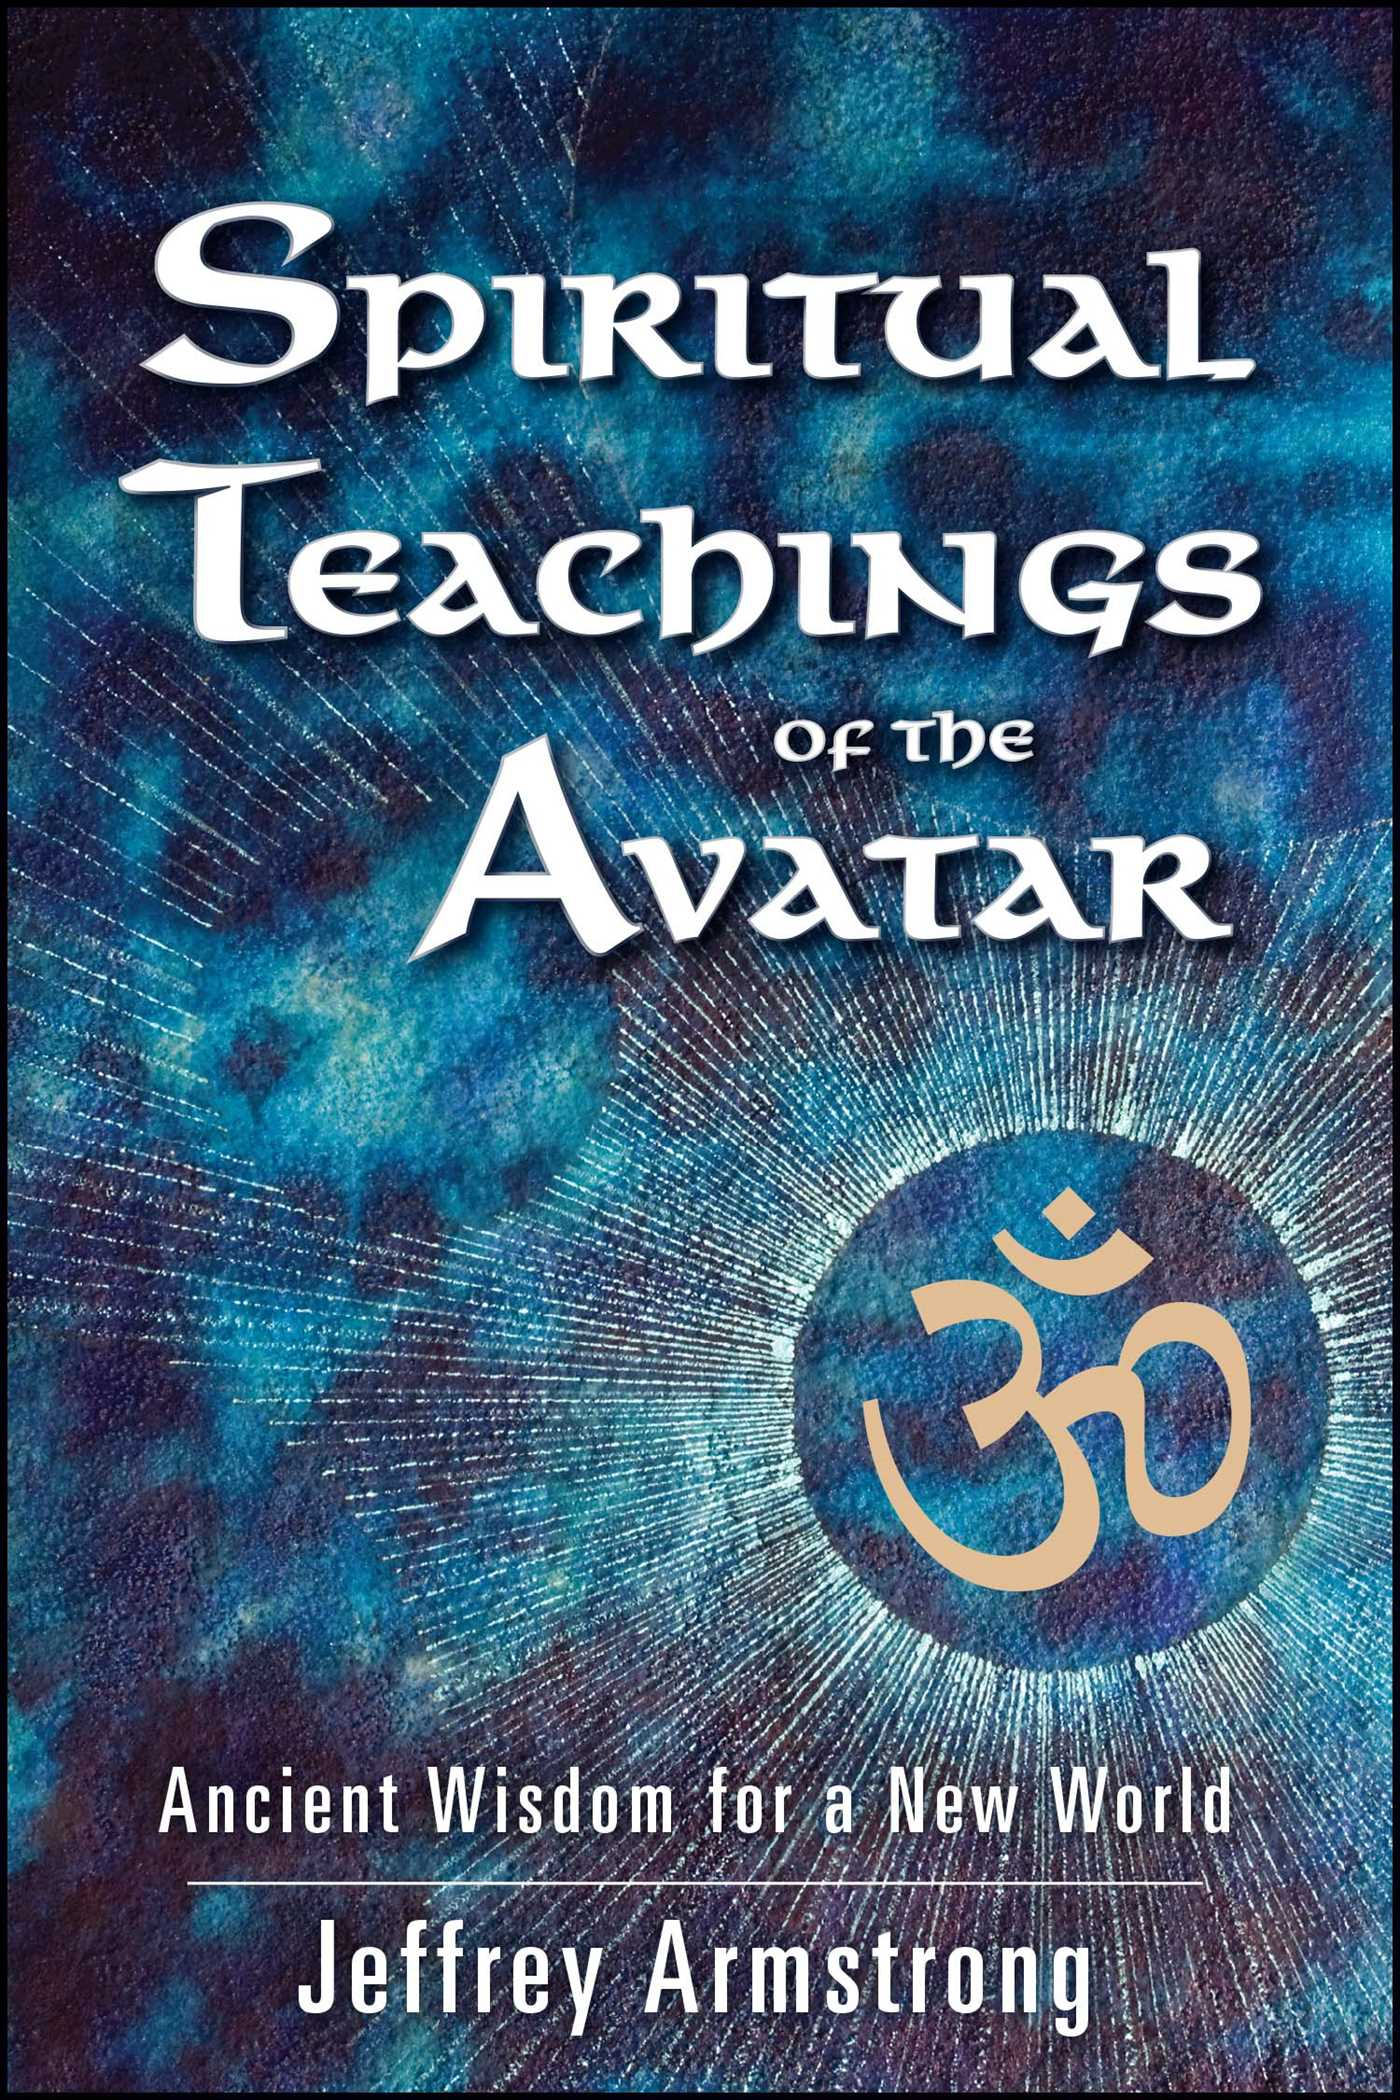 Spiritual-teachings-of-the-avatar-9781439197028_hr